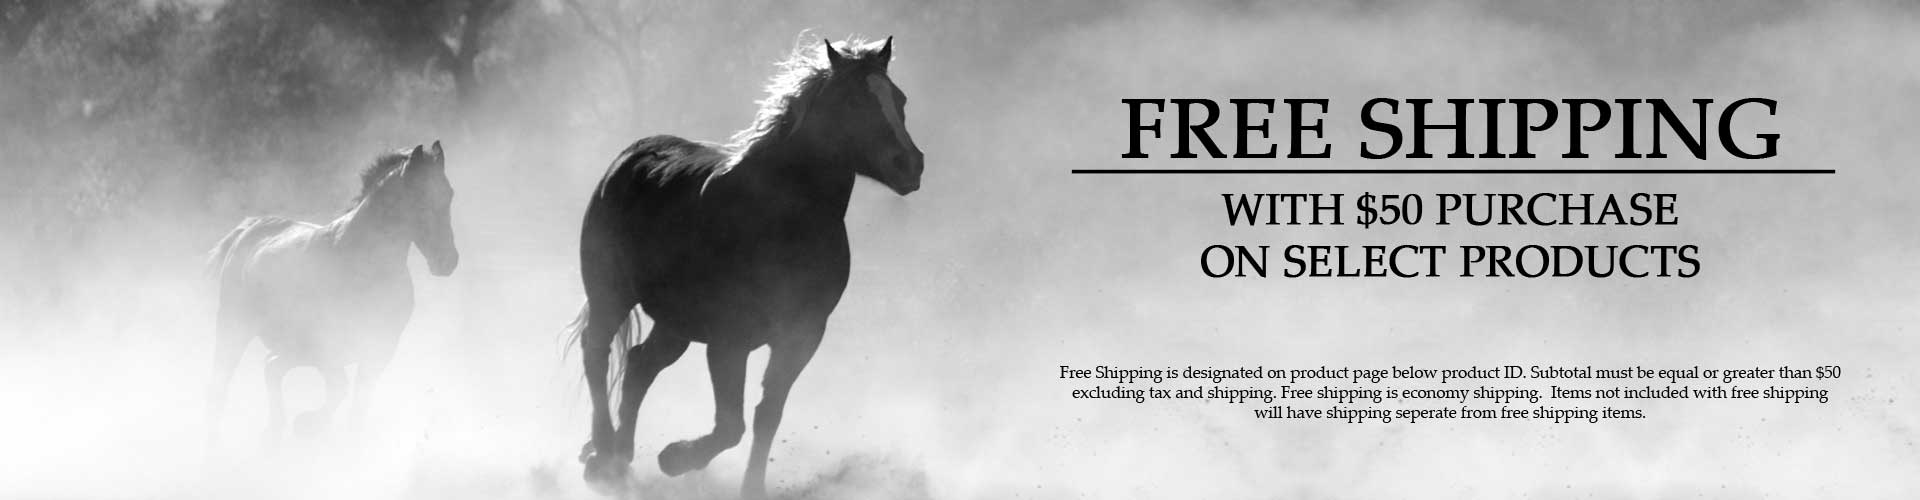 Free Shipping With $50 Purchase